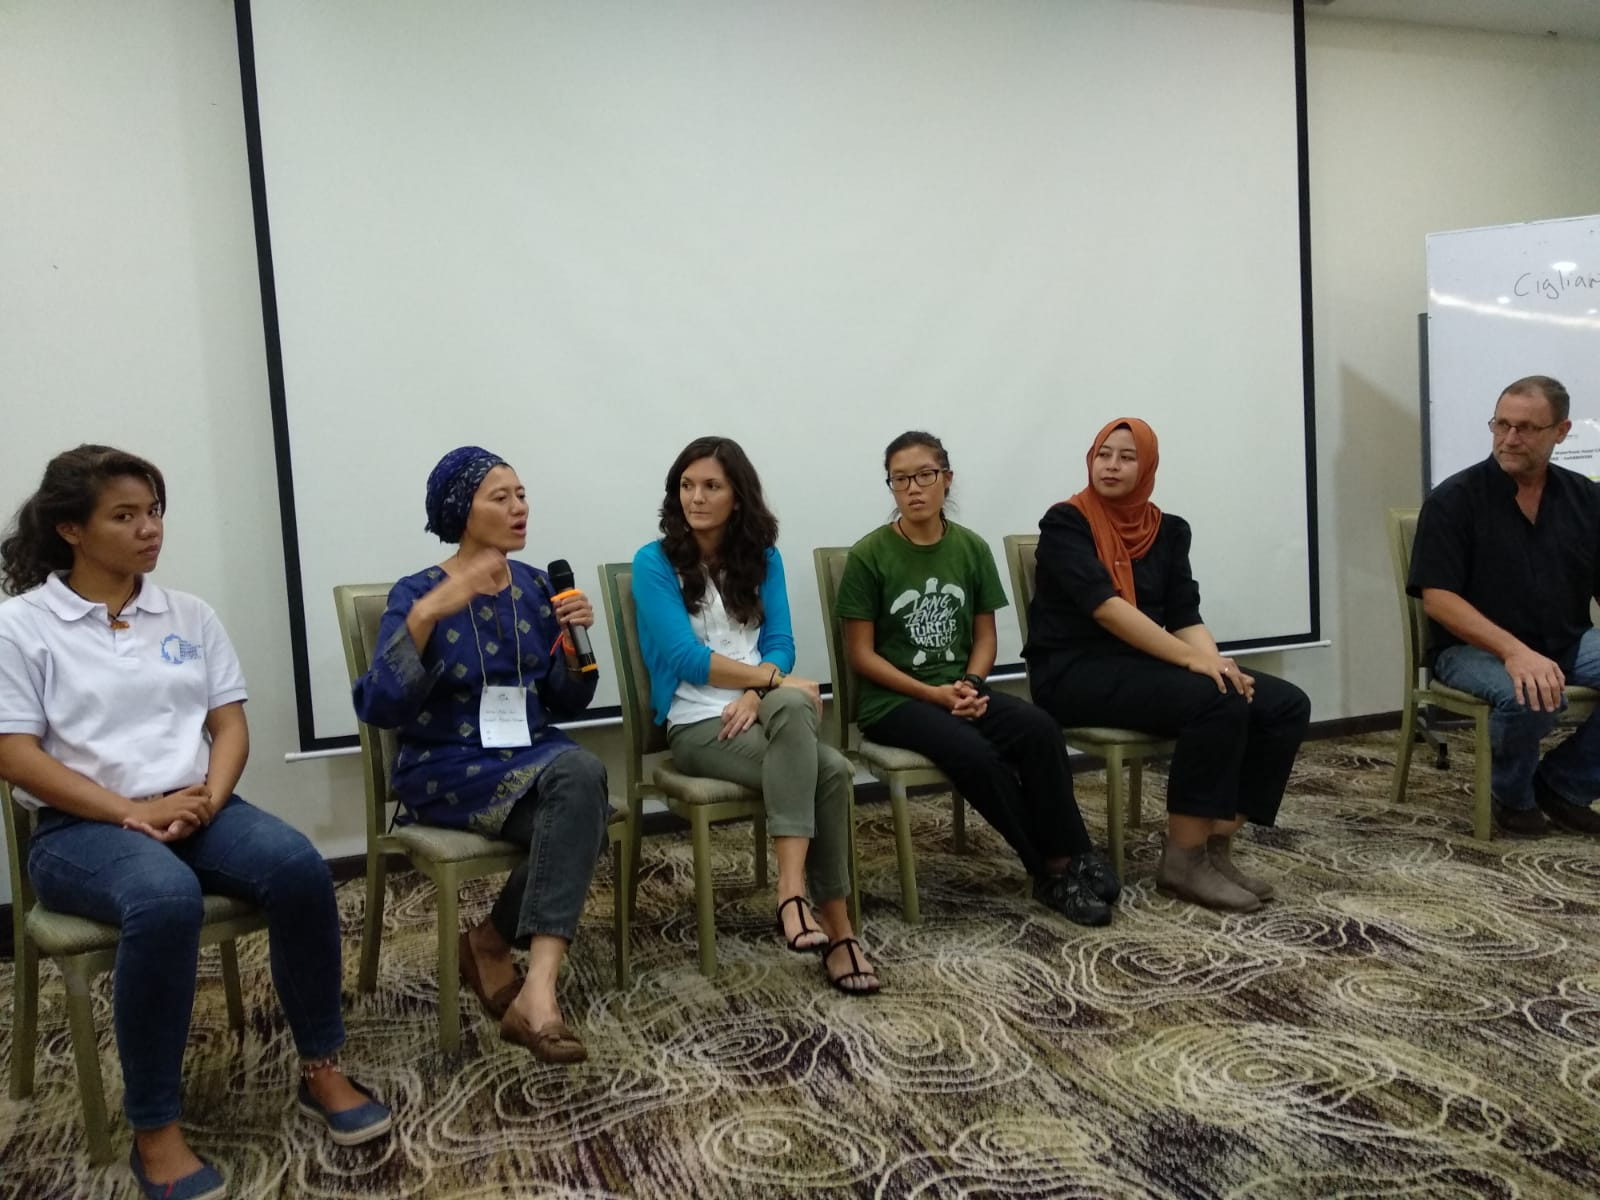 question and answer session with the presenters -